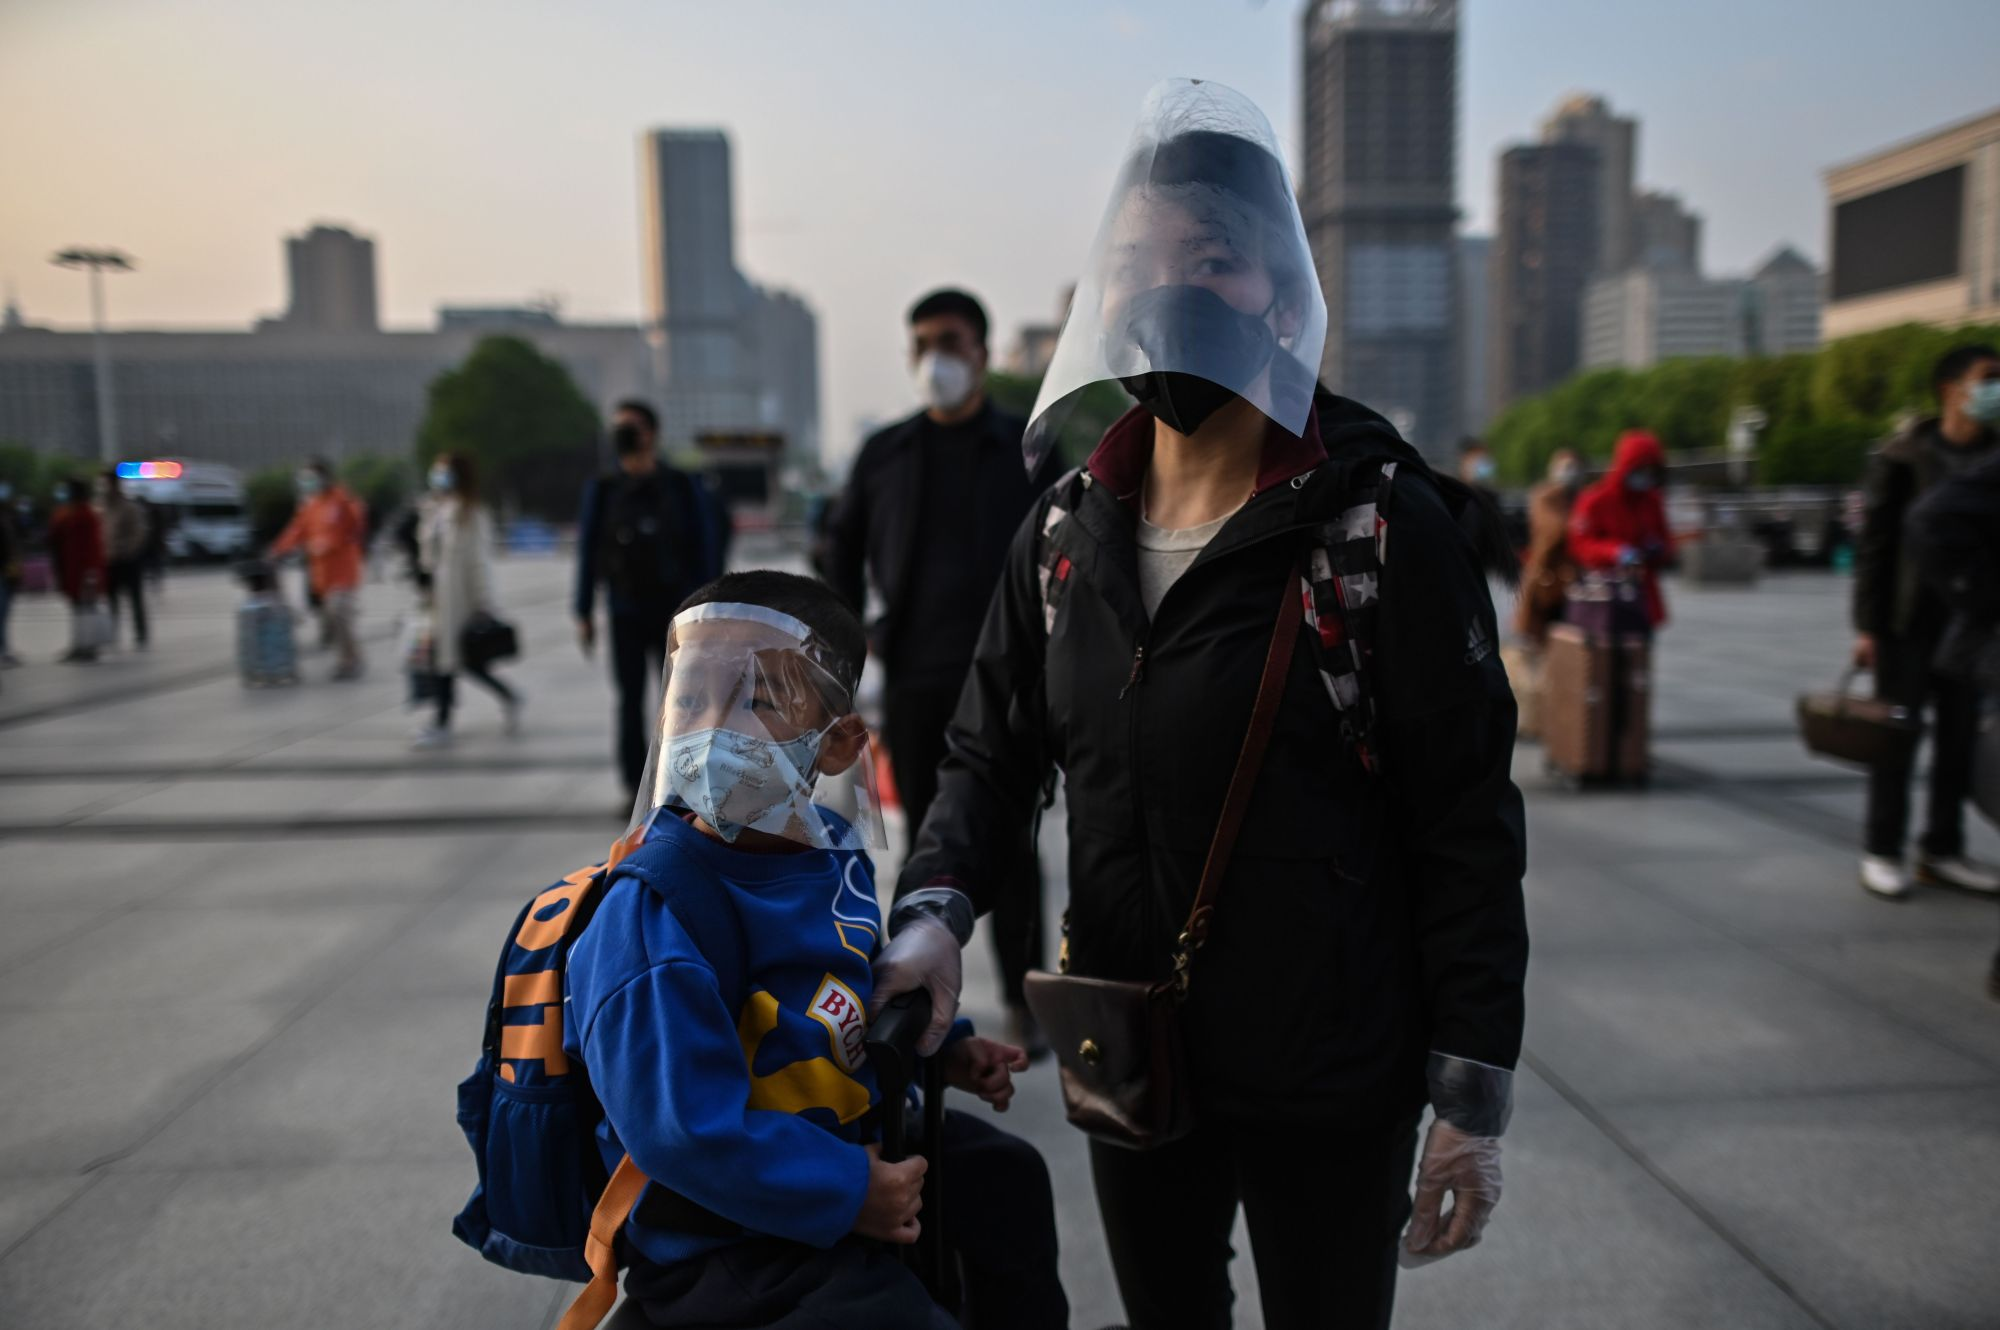 A boy wearing a face shield on top of a face mask waits with his mother to board one of the first trains leaving Wuhan after an outbound travel ban was lifted, at the Hankou railway station in Wuhan in China's central Hubei province early on April 8, 2020. (HECTOR RETAMAL/AFP via Getty Images)